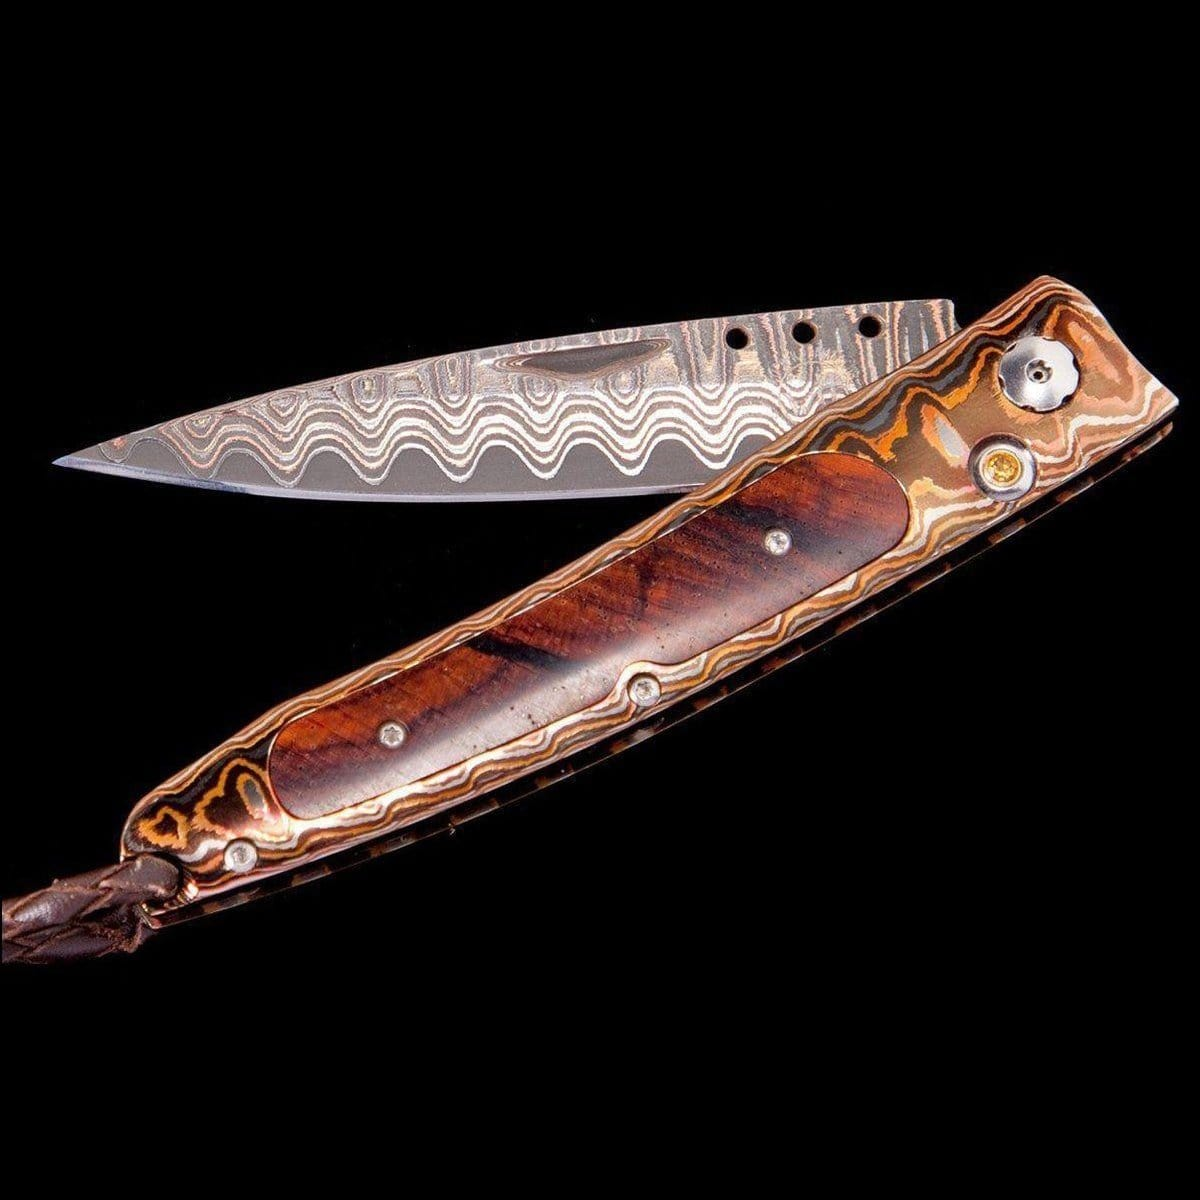 Ventana Prescott Limited Edition Knife - B06 PRESCOTT - William Henry